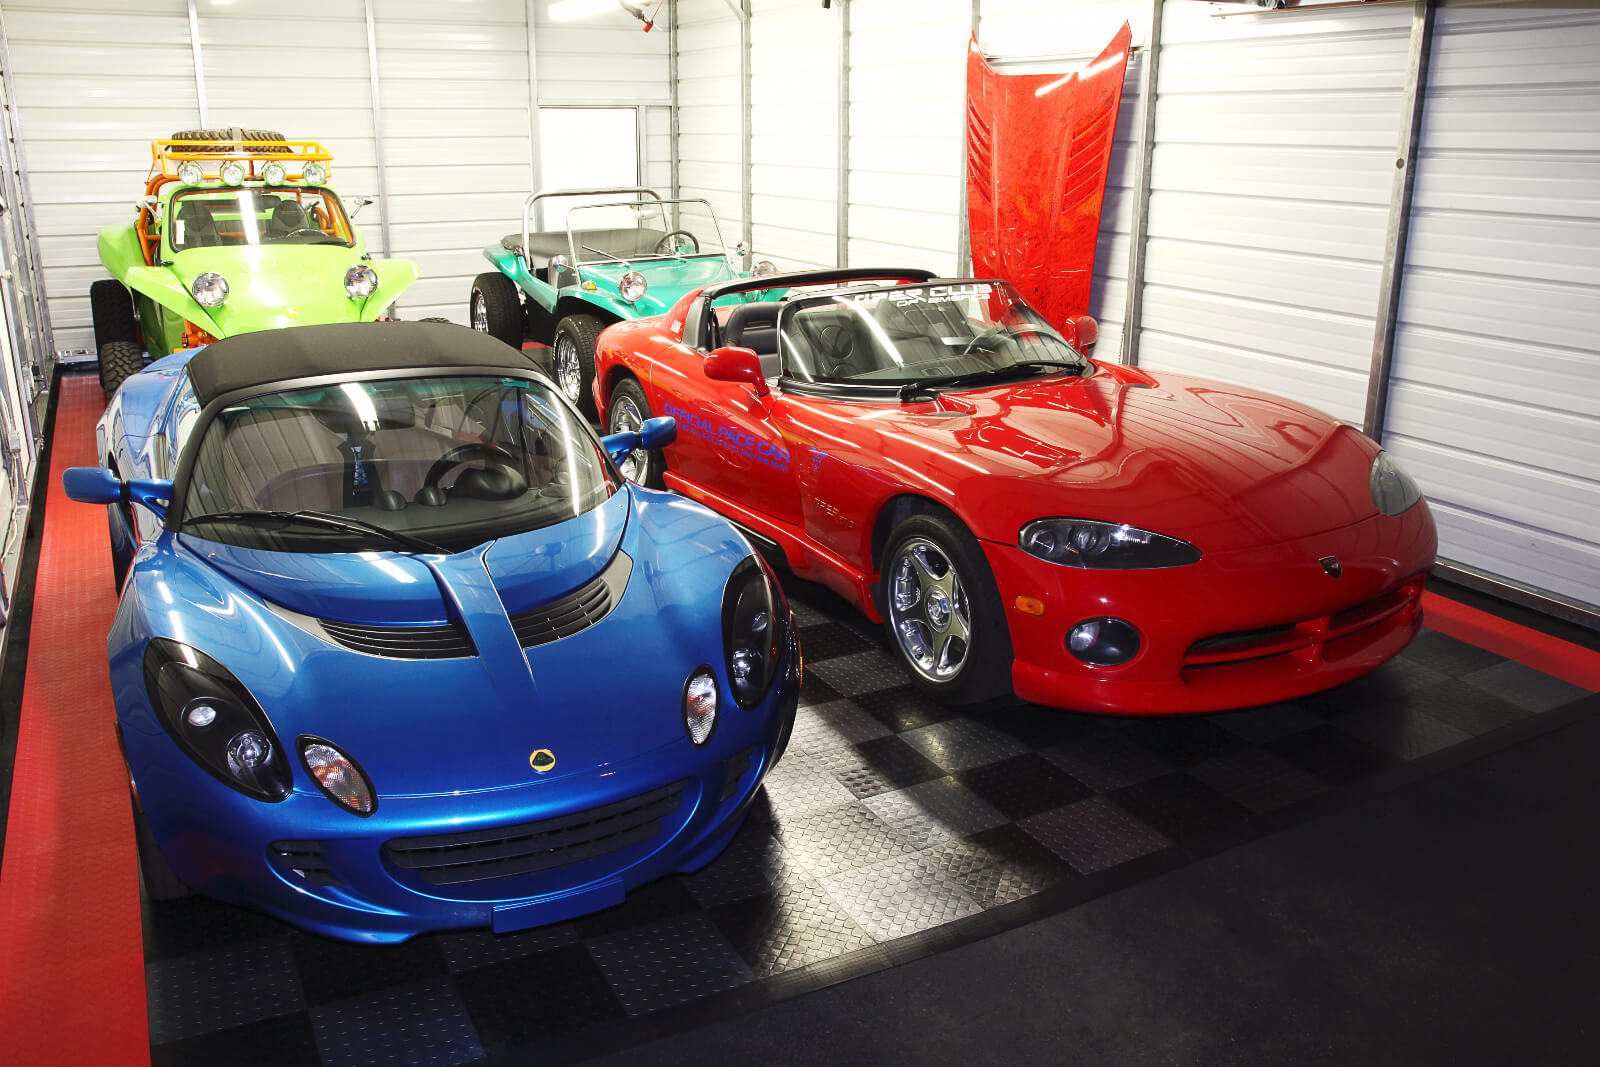 Garage with Lotus, Viper, and Dune buggy